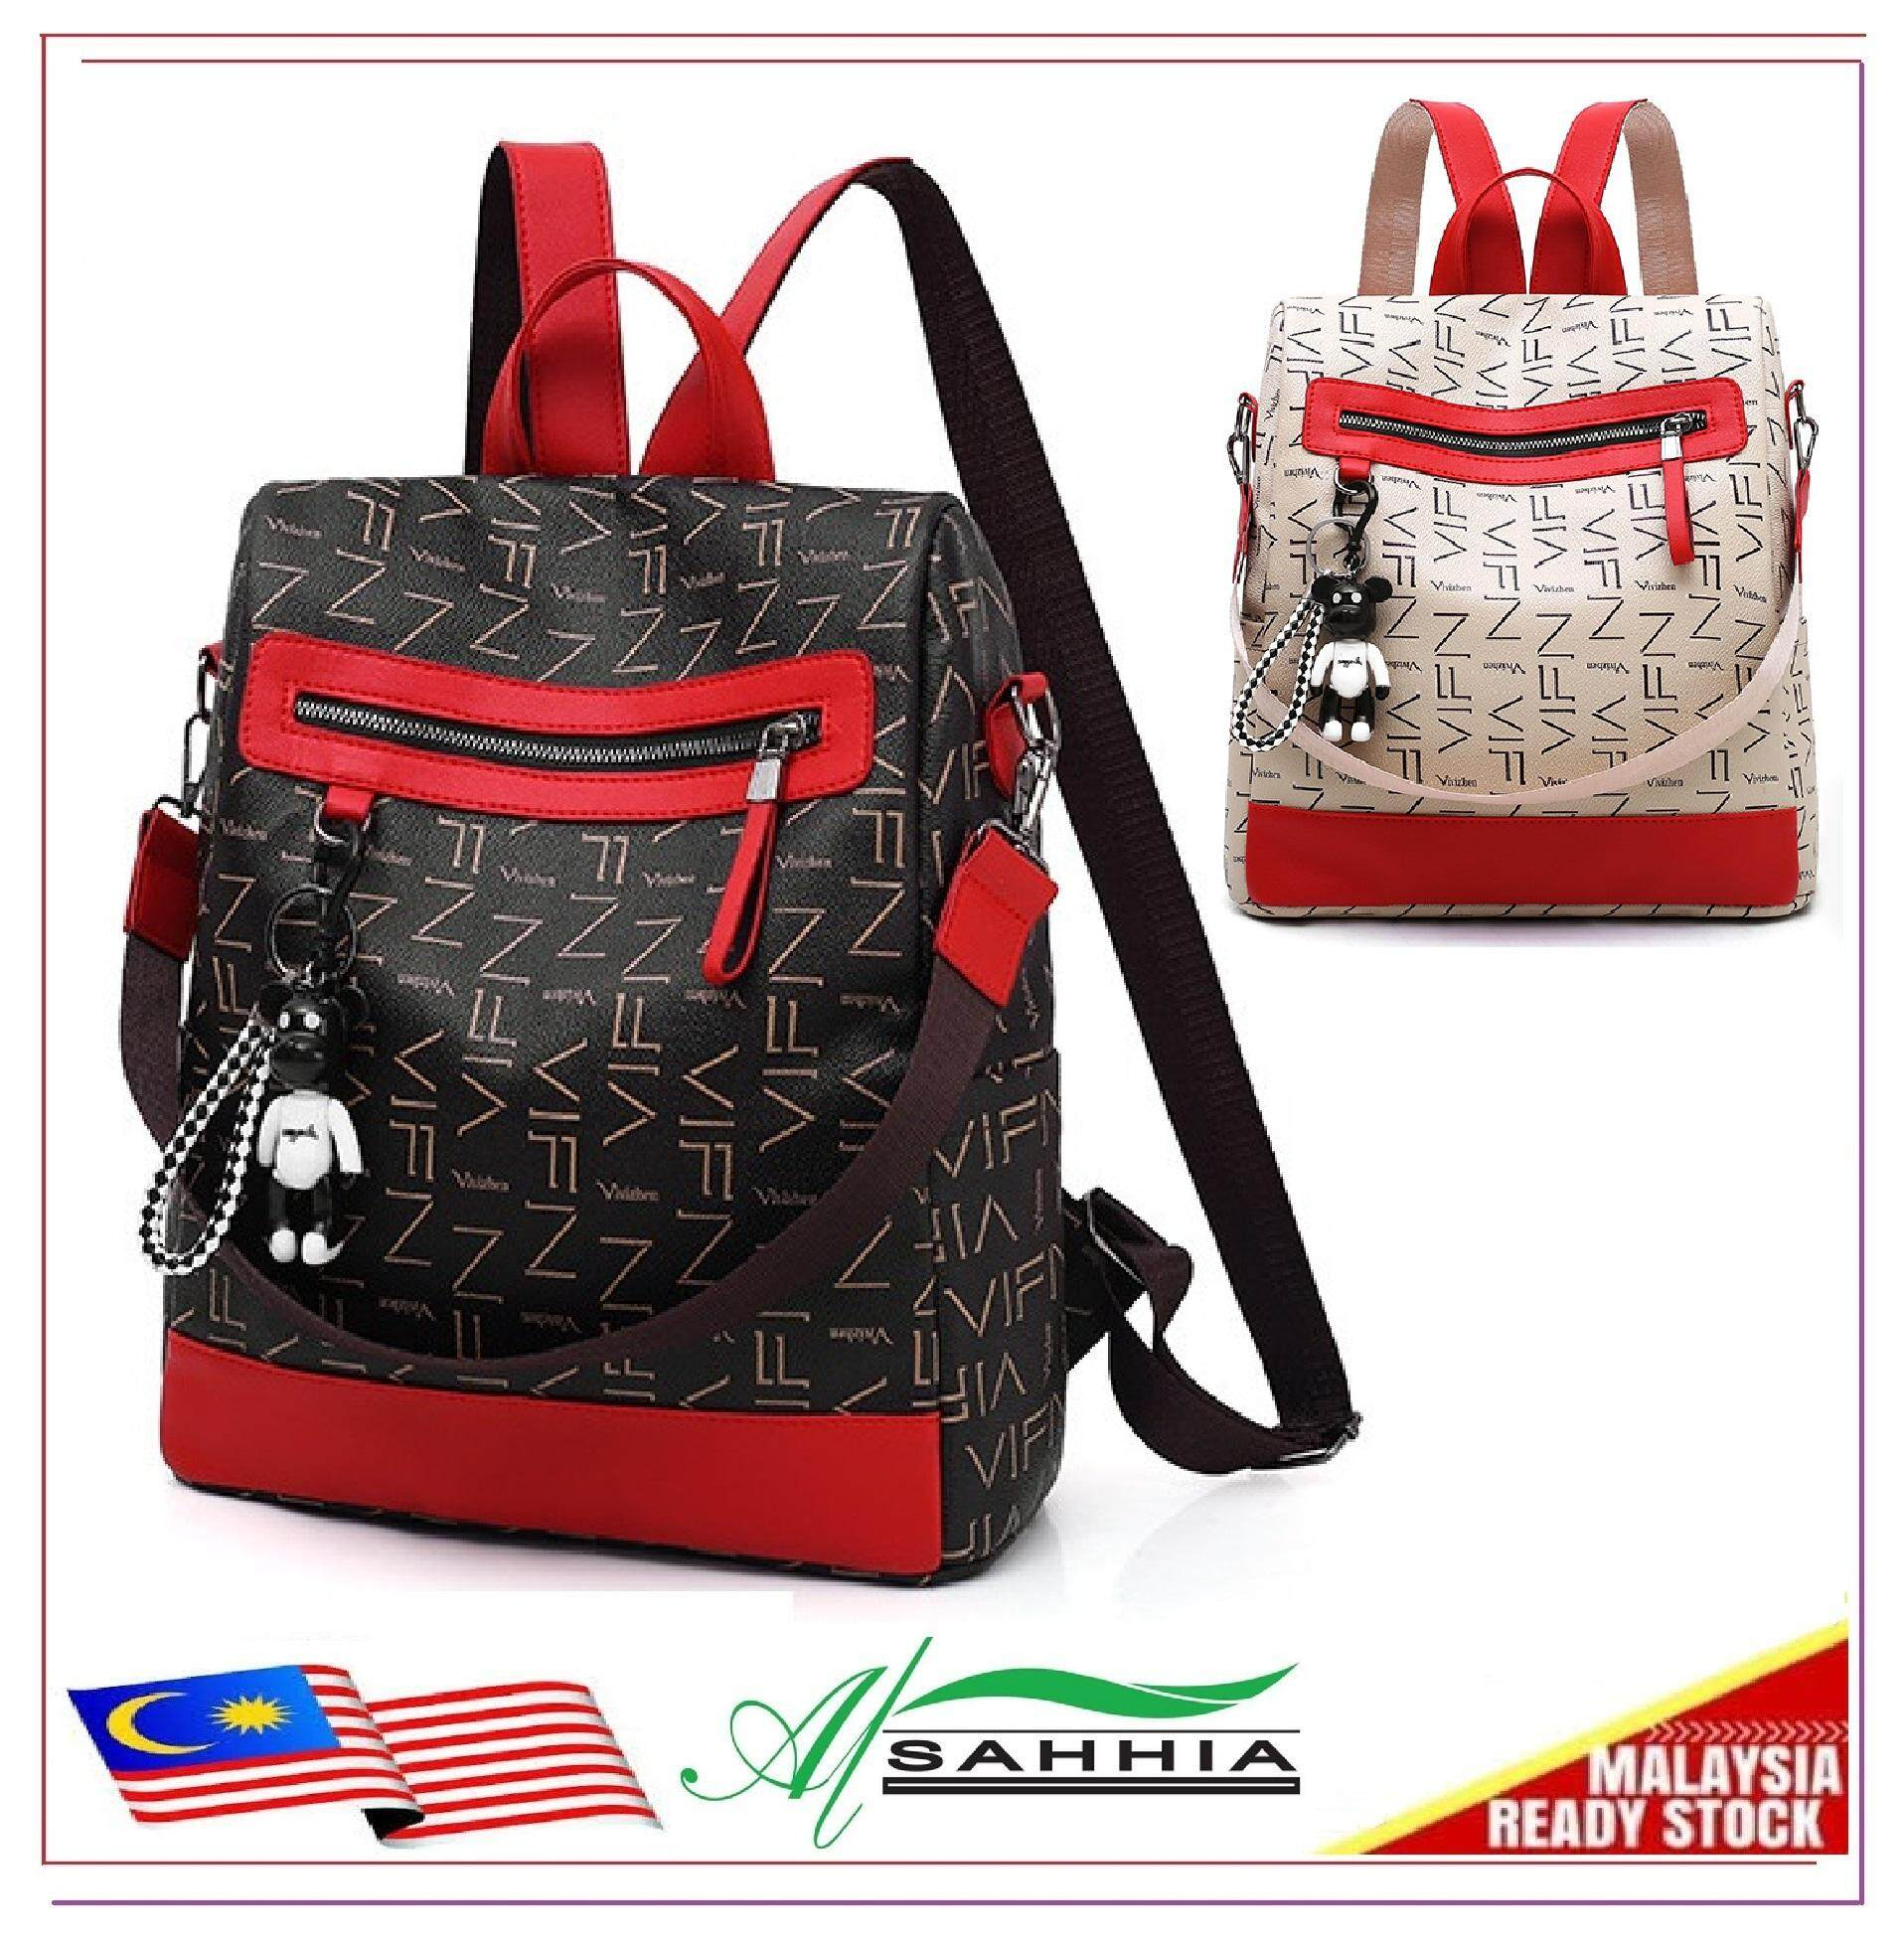 71aada0c1c Al Sahhia Ready Stock VIFN Anti-theft Waterproof Teenage Backpack Travel  Casual Bag